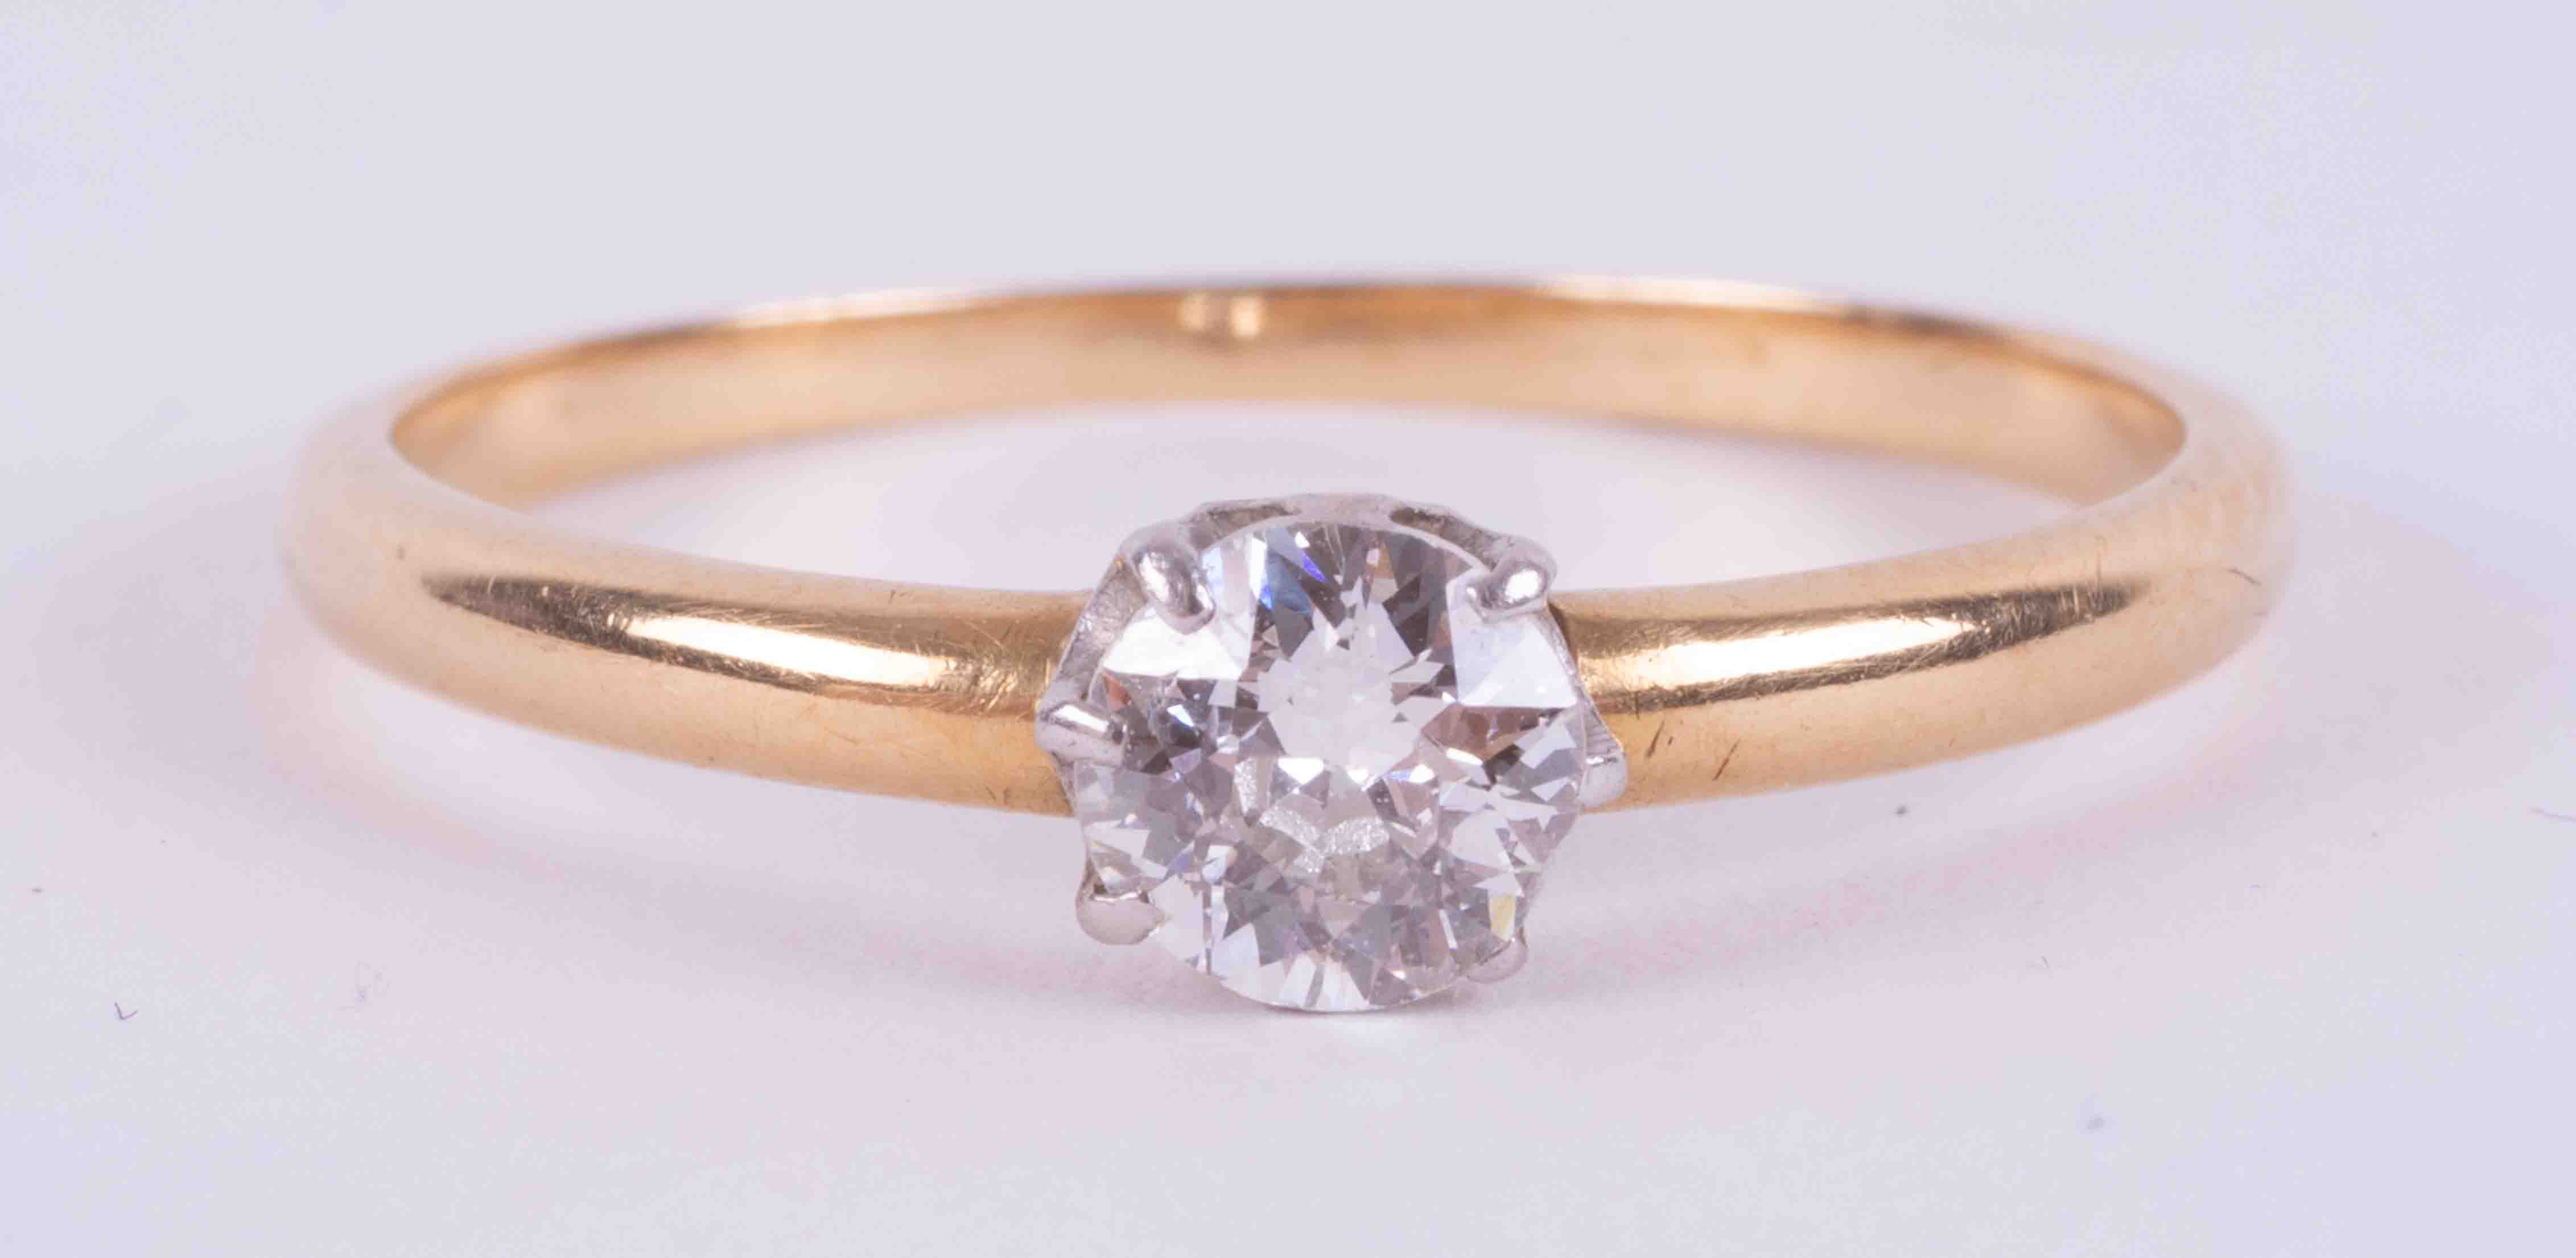 An 18ct yellow & white gold (no hallmarks and not tested) solitaire ring set with an older cut round